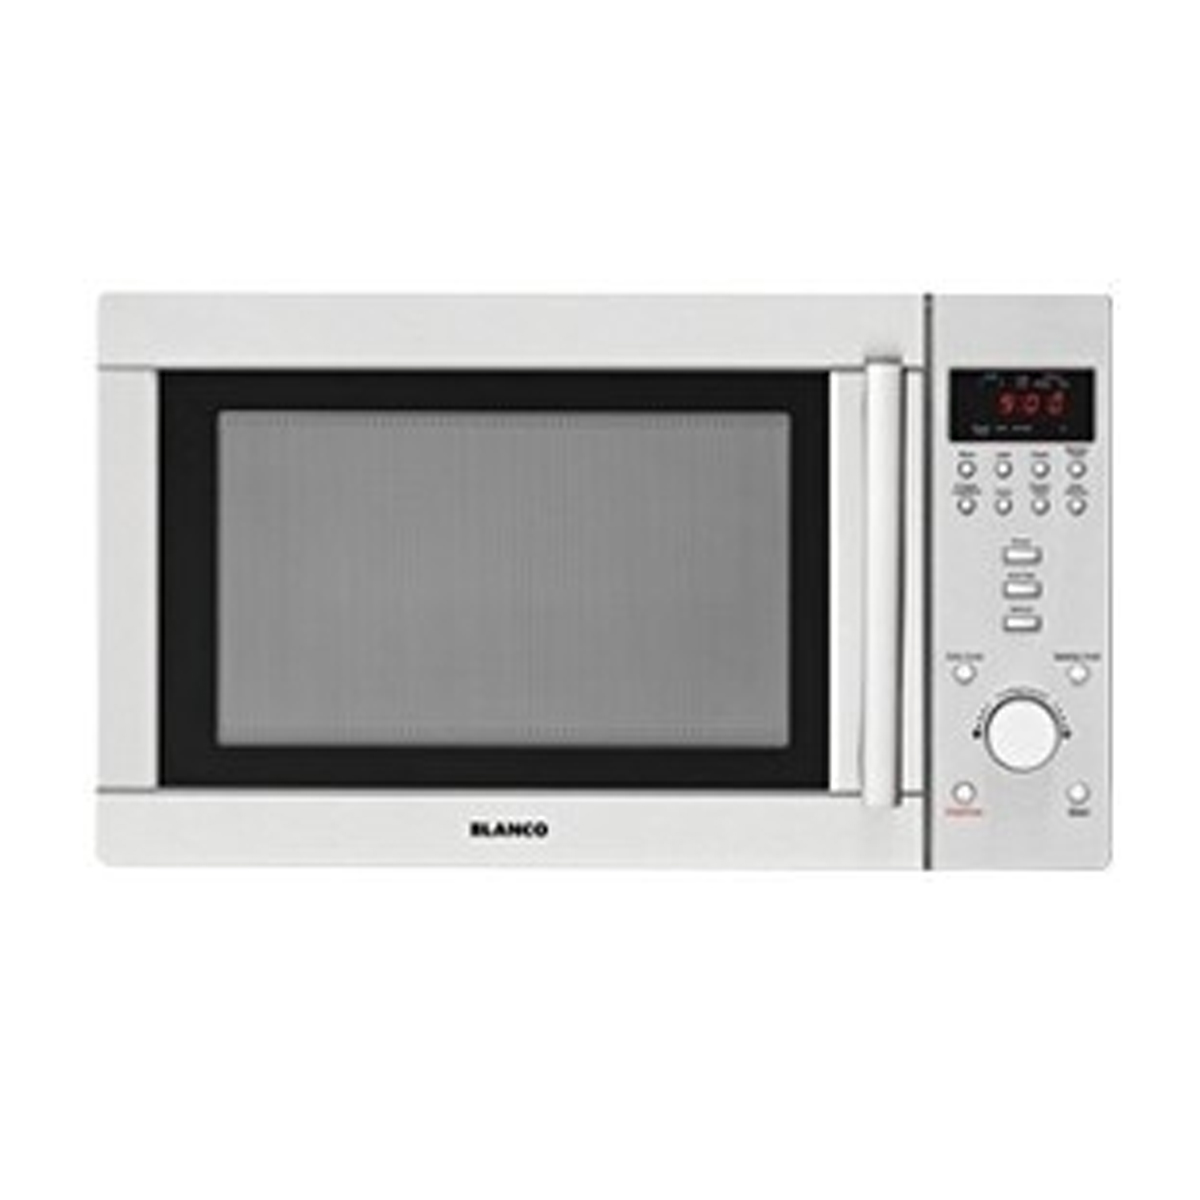 Blanco MF34SX 34 litre Microwave Oven with Auto Cook Menu Options